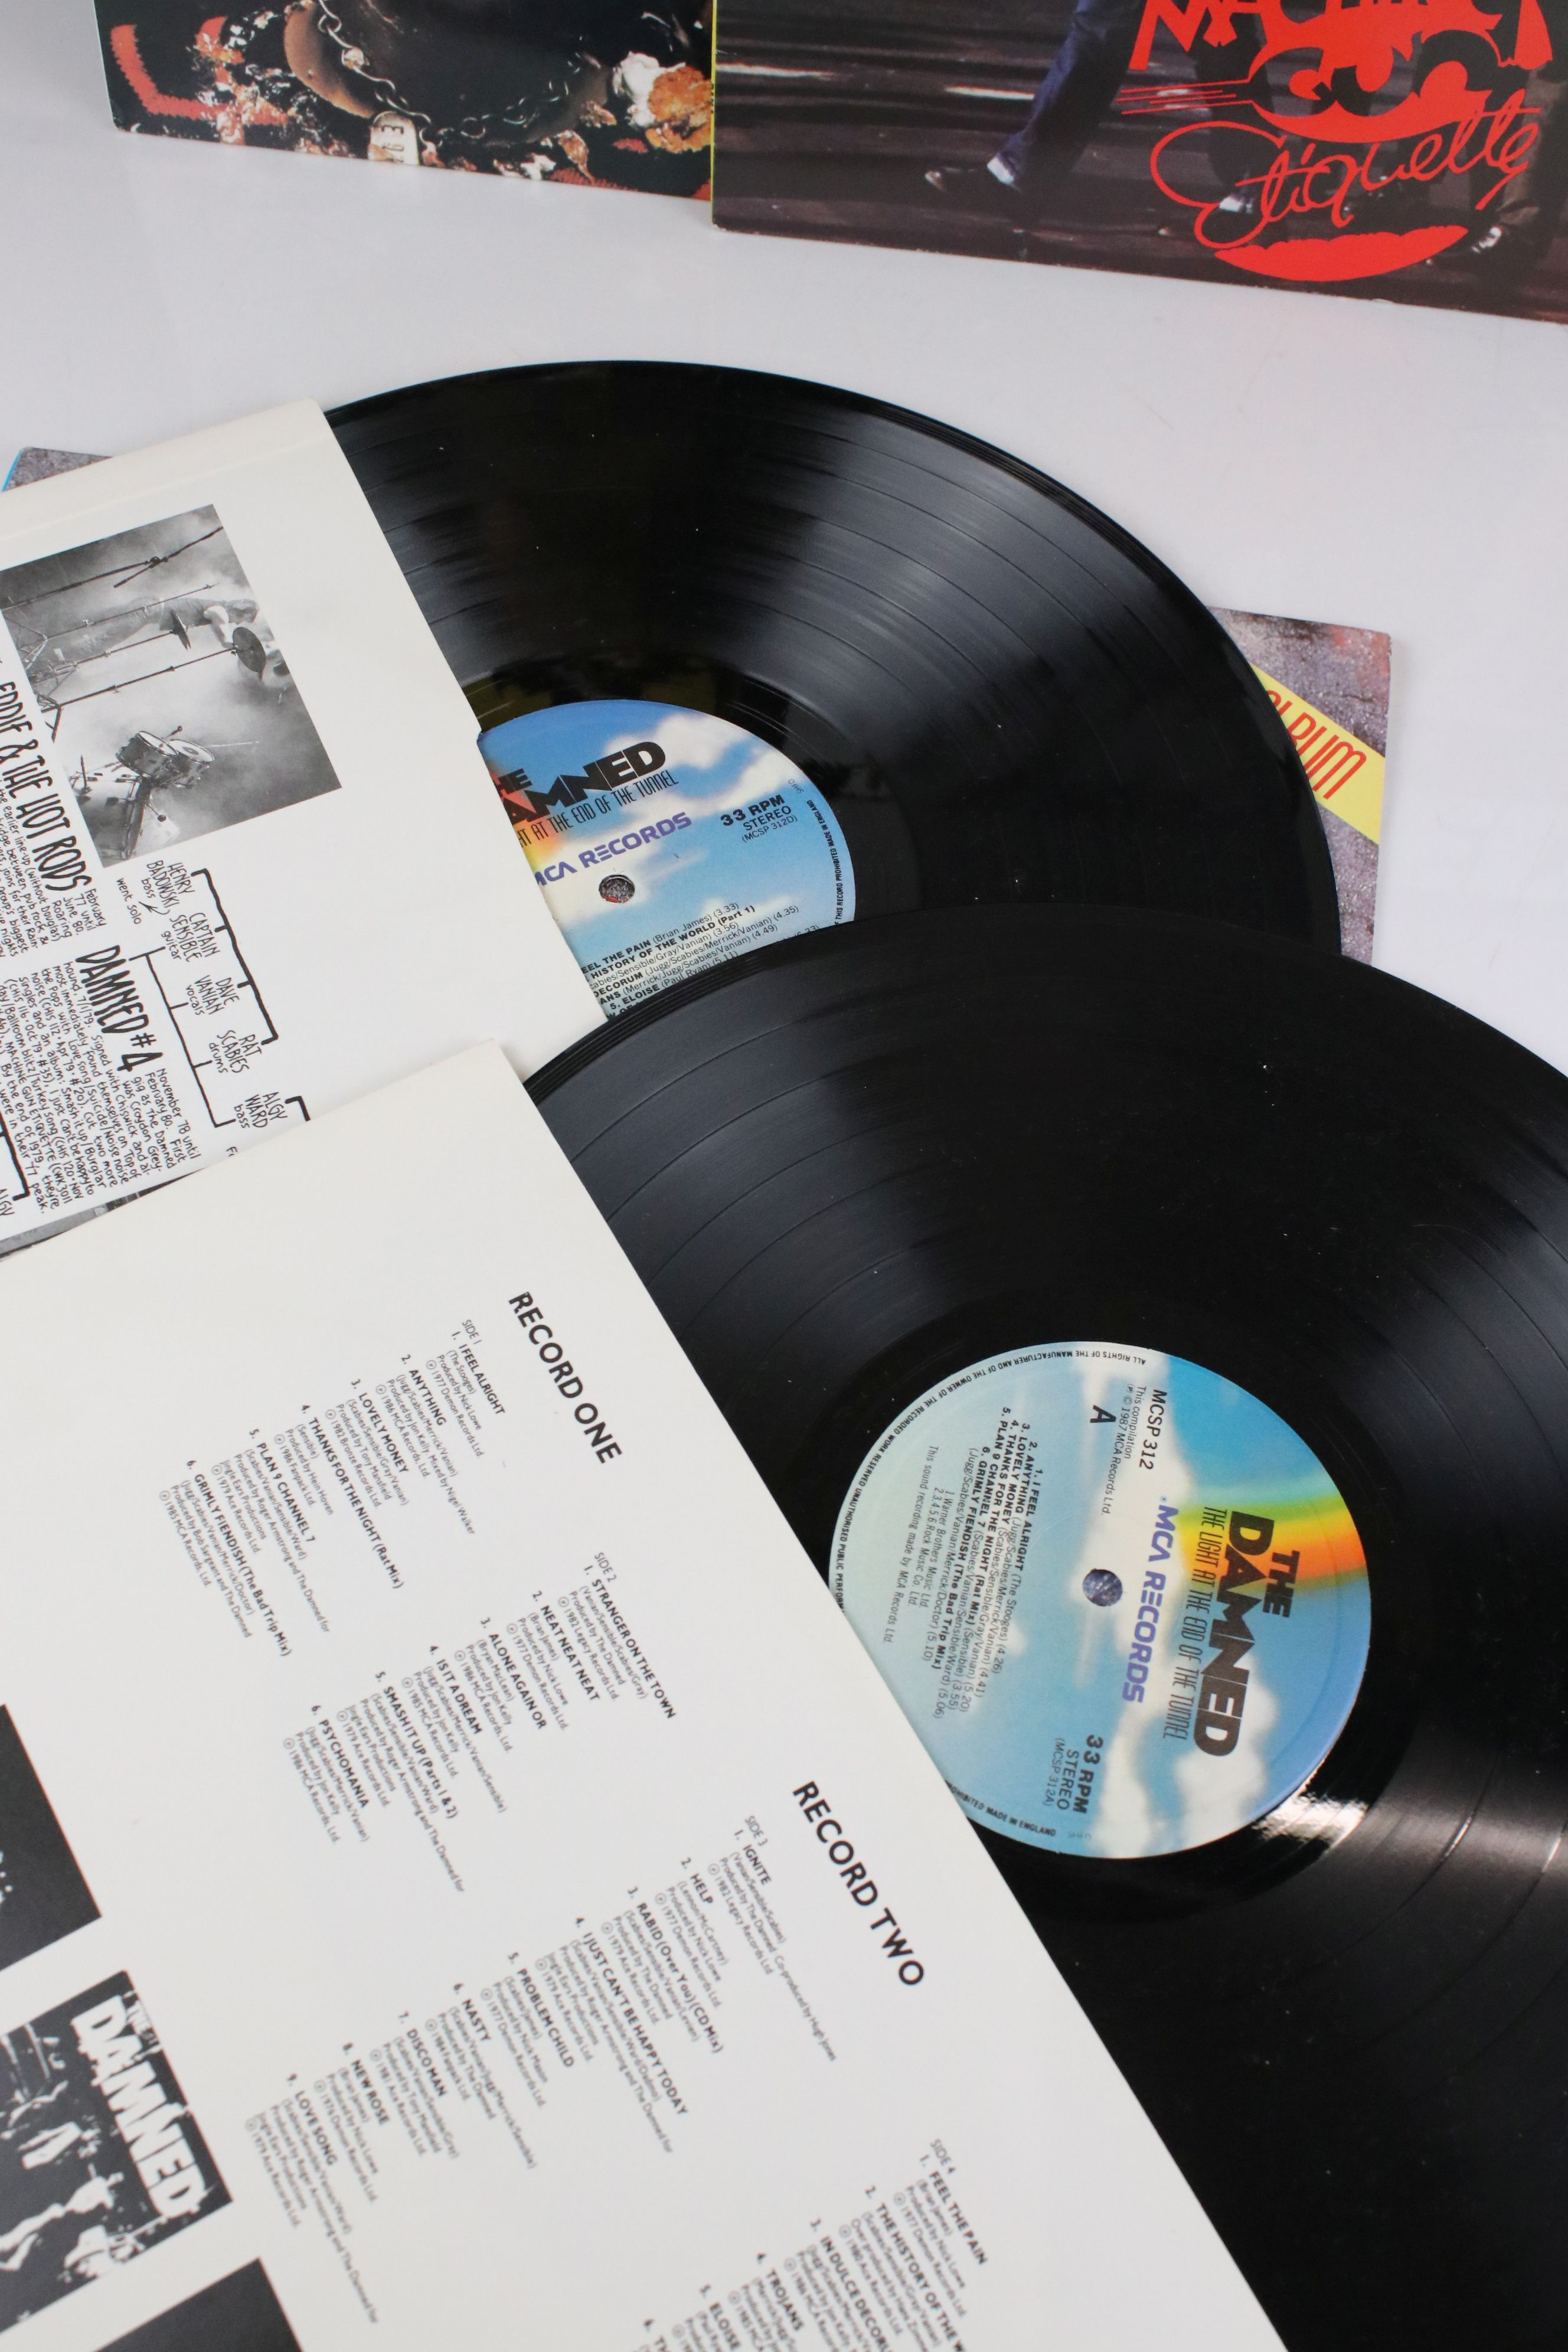 Vinyl - The Damned - Two reissue LPs to include Damned Damned Damned & Machine Gun Etiquette plus - Image 2 of 4